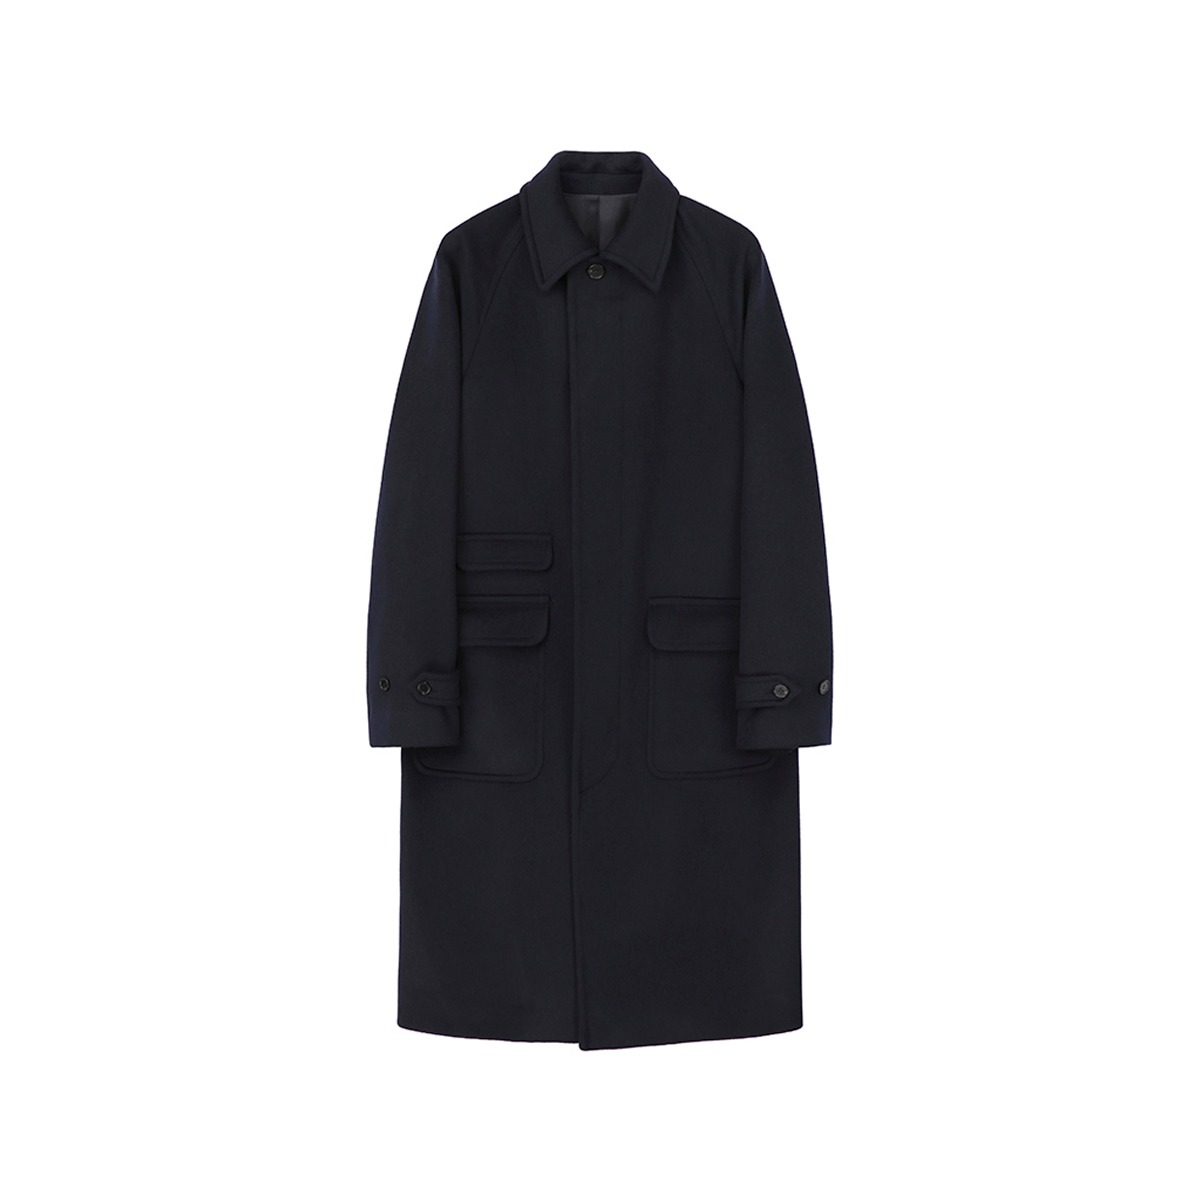 [ART IF ACTS] BALMACAAN COAT 'NAVY'